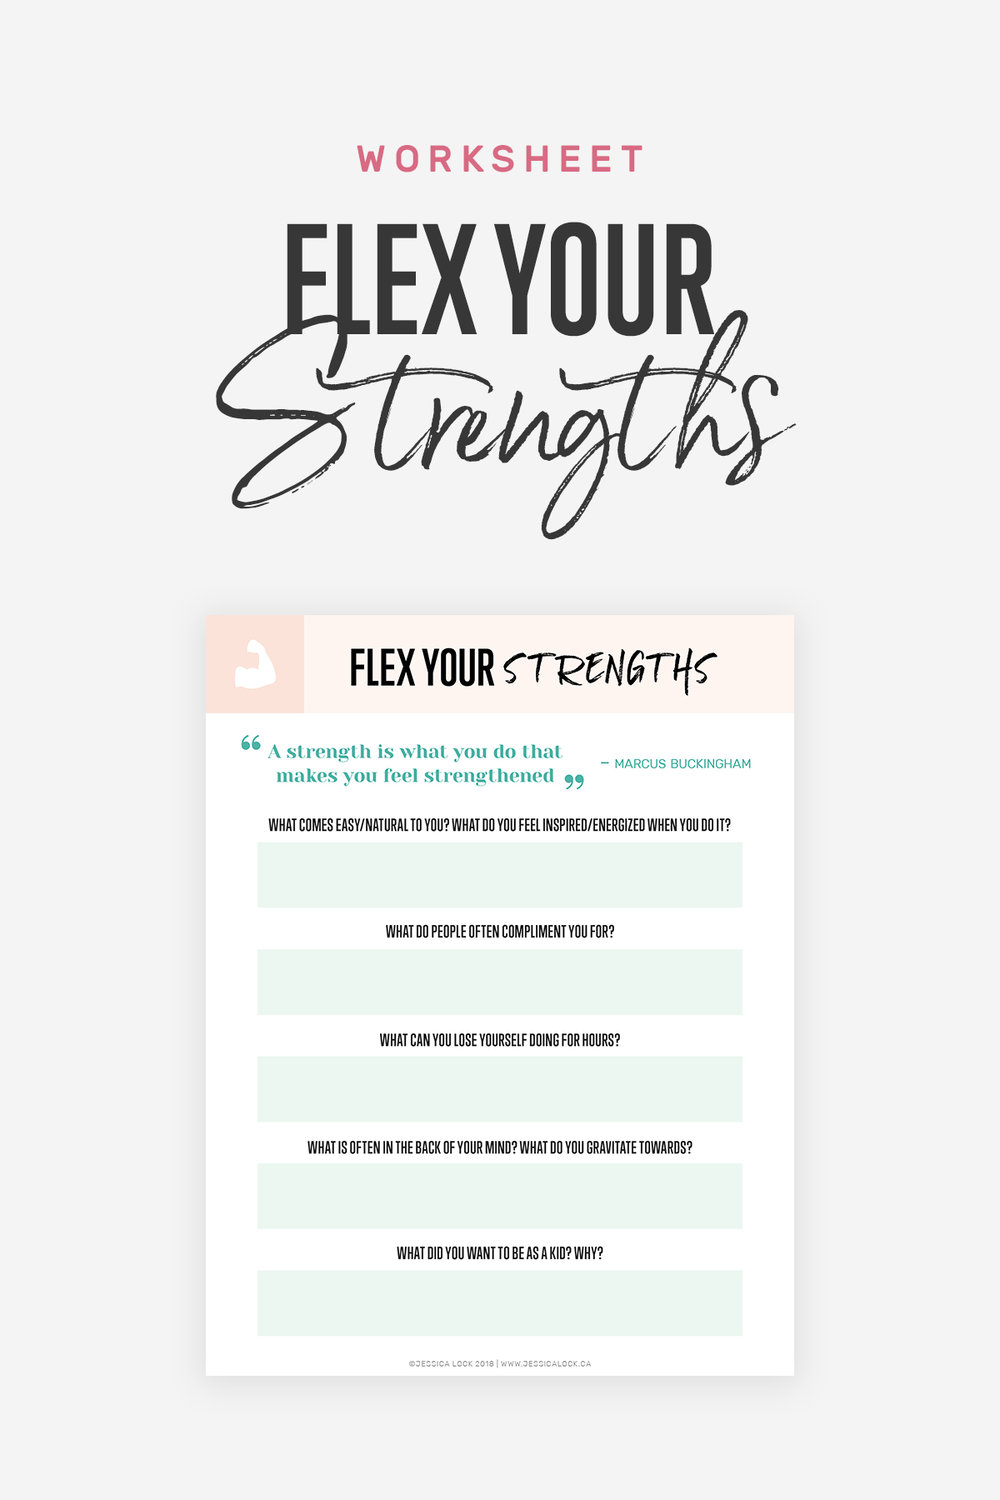 PinterestReady_Covers_Worksheet---Flexyourstrengths-600x900.jpg